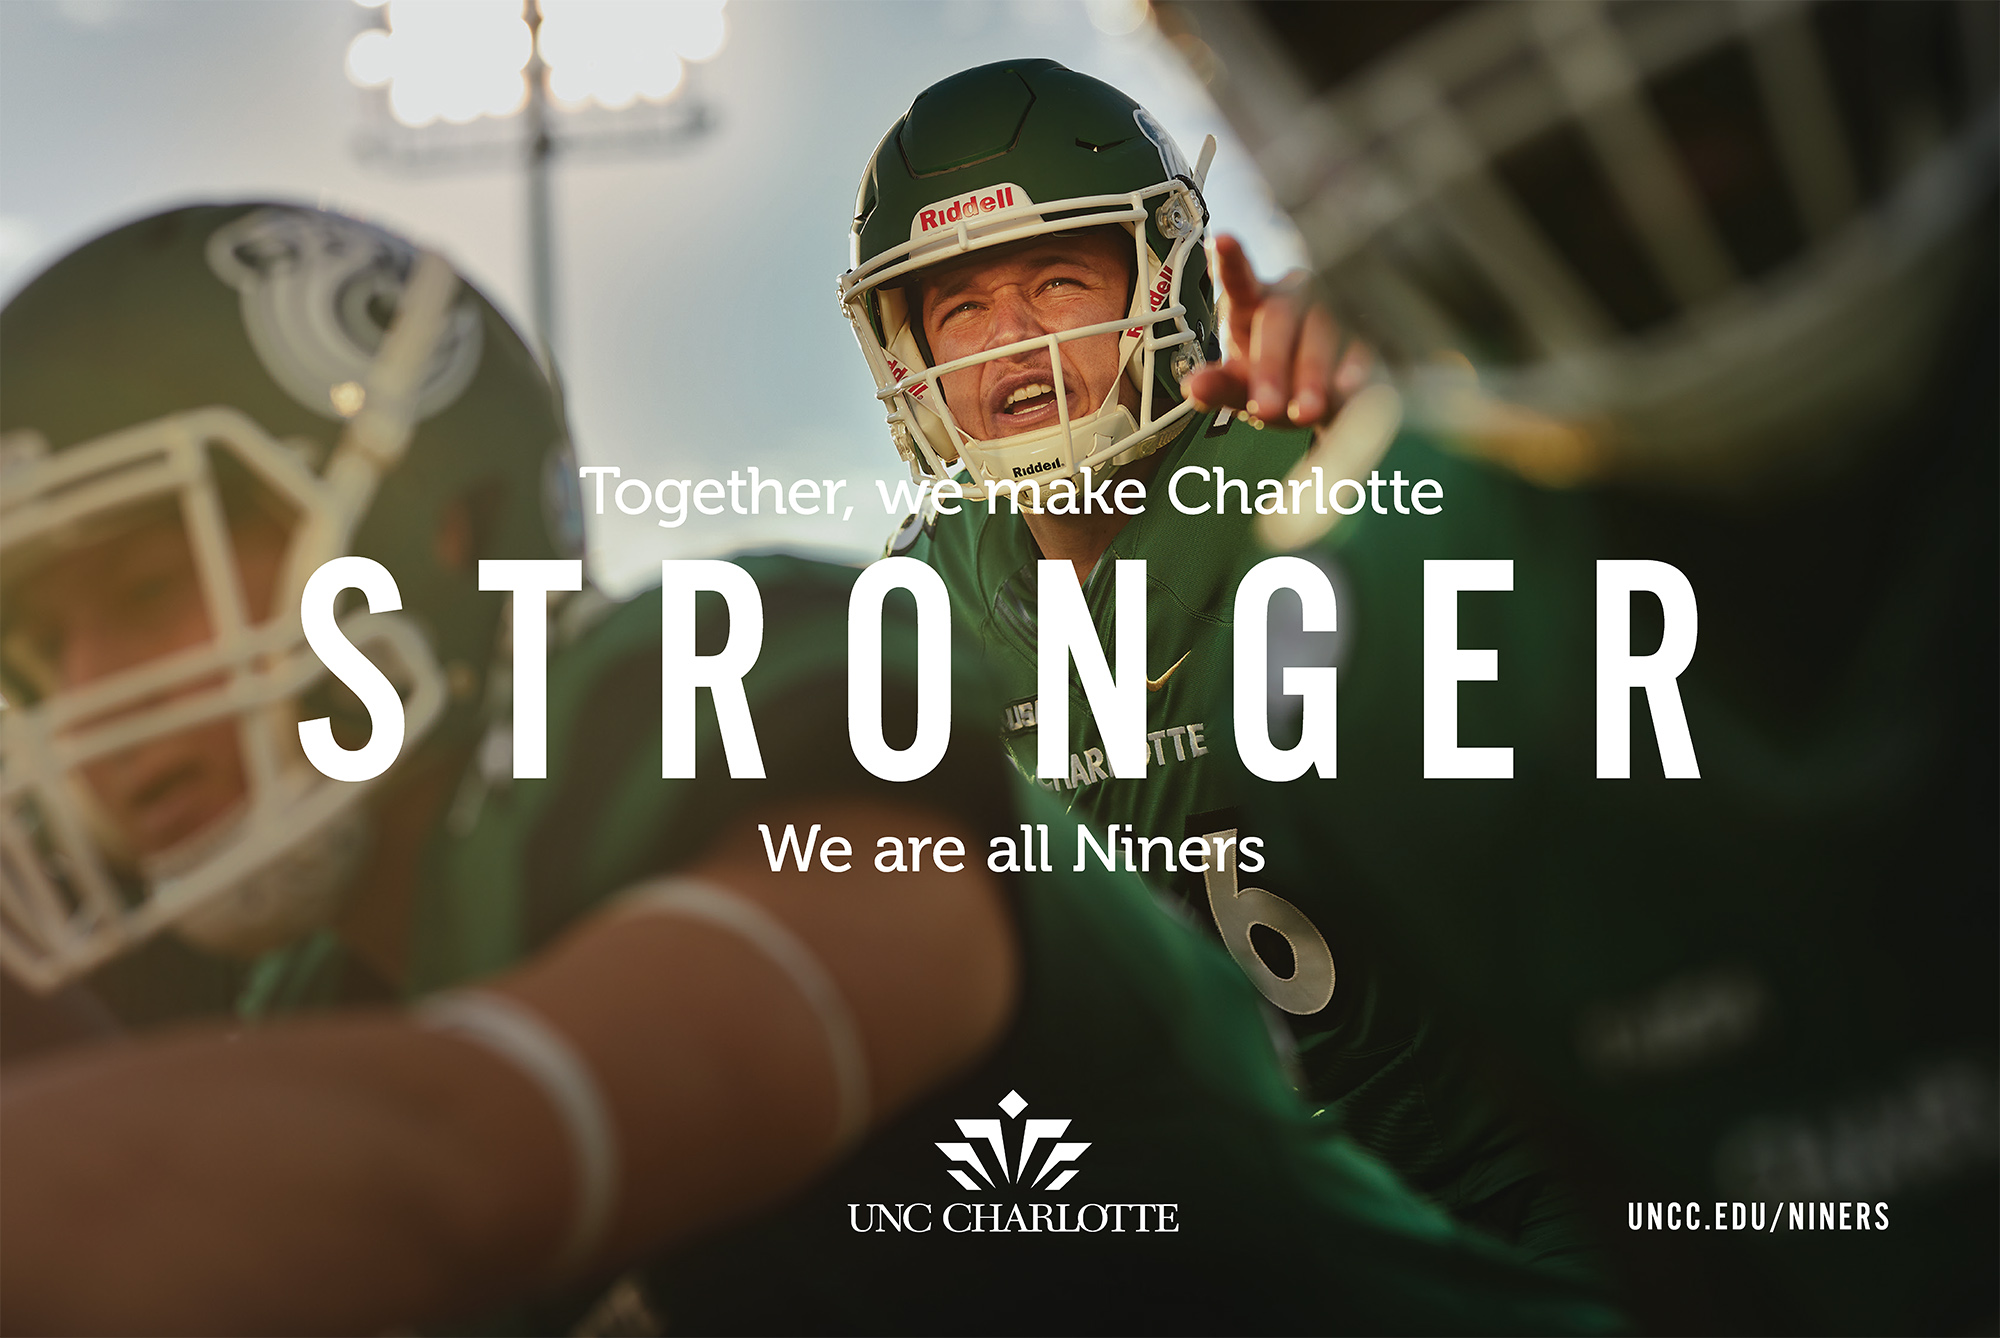 Together, we make Charlotte STRONGER.